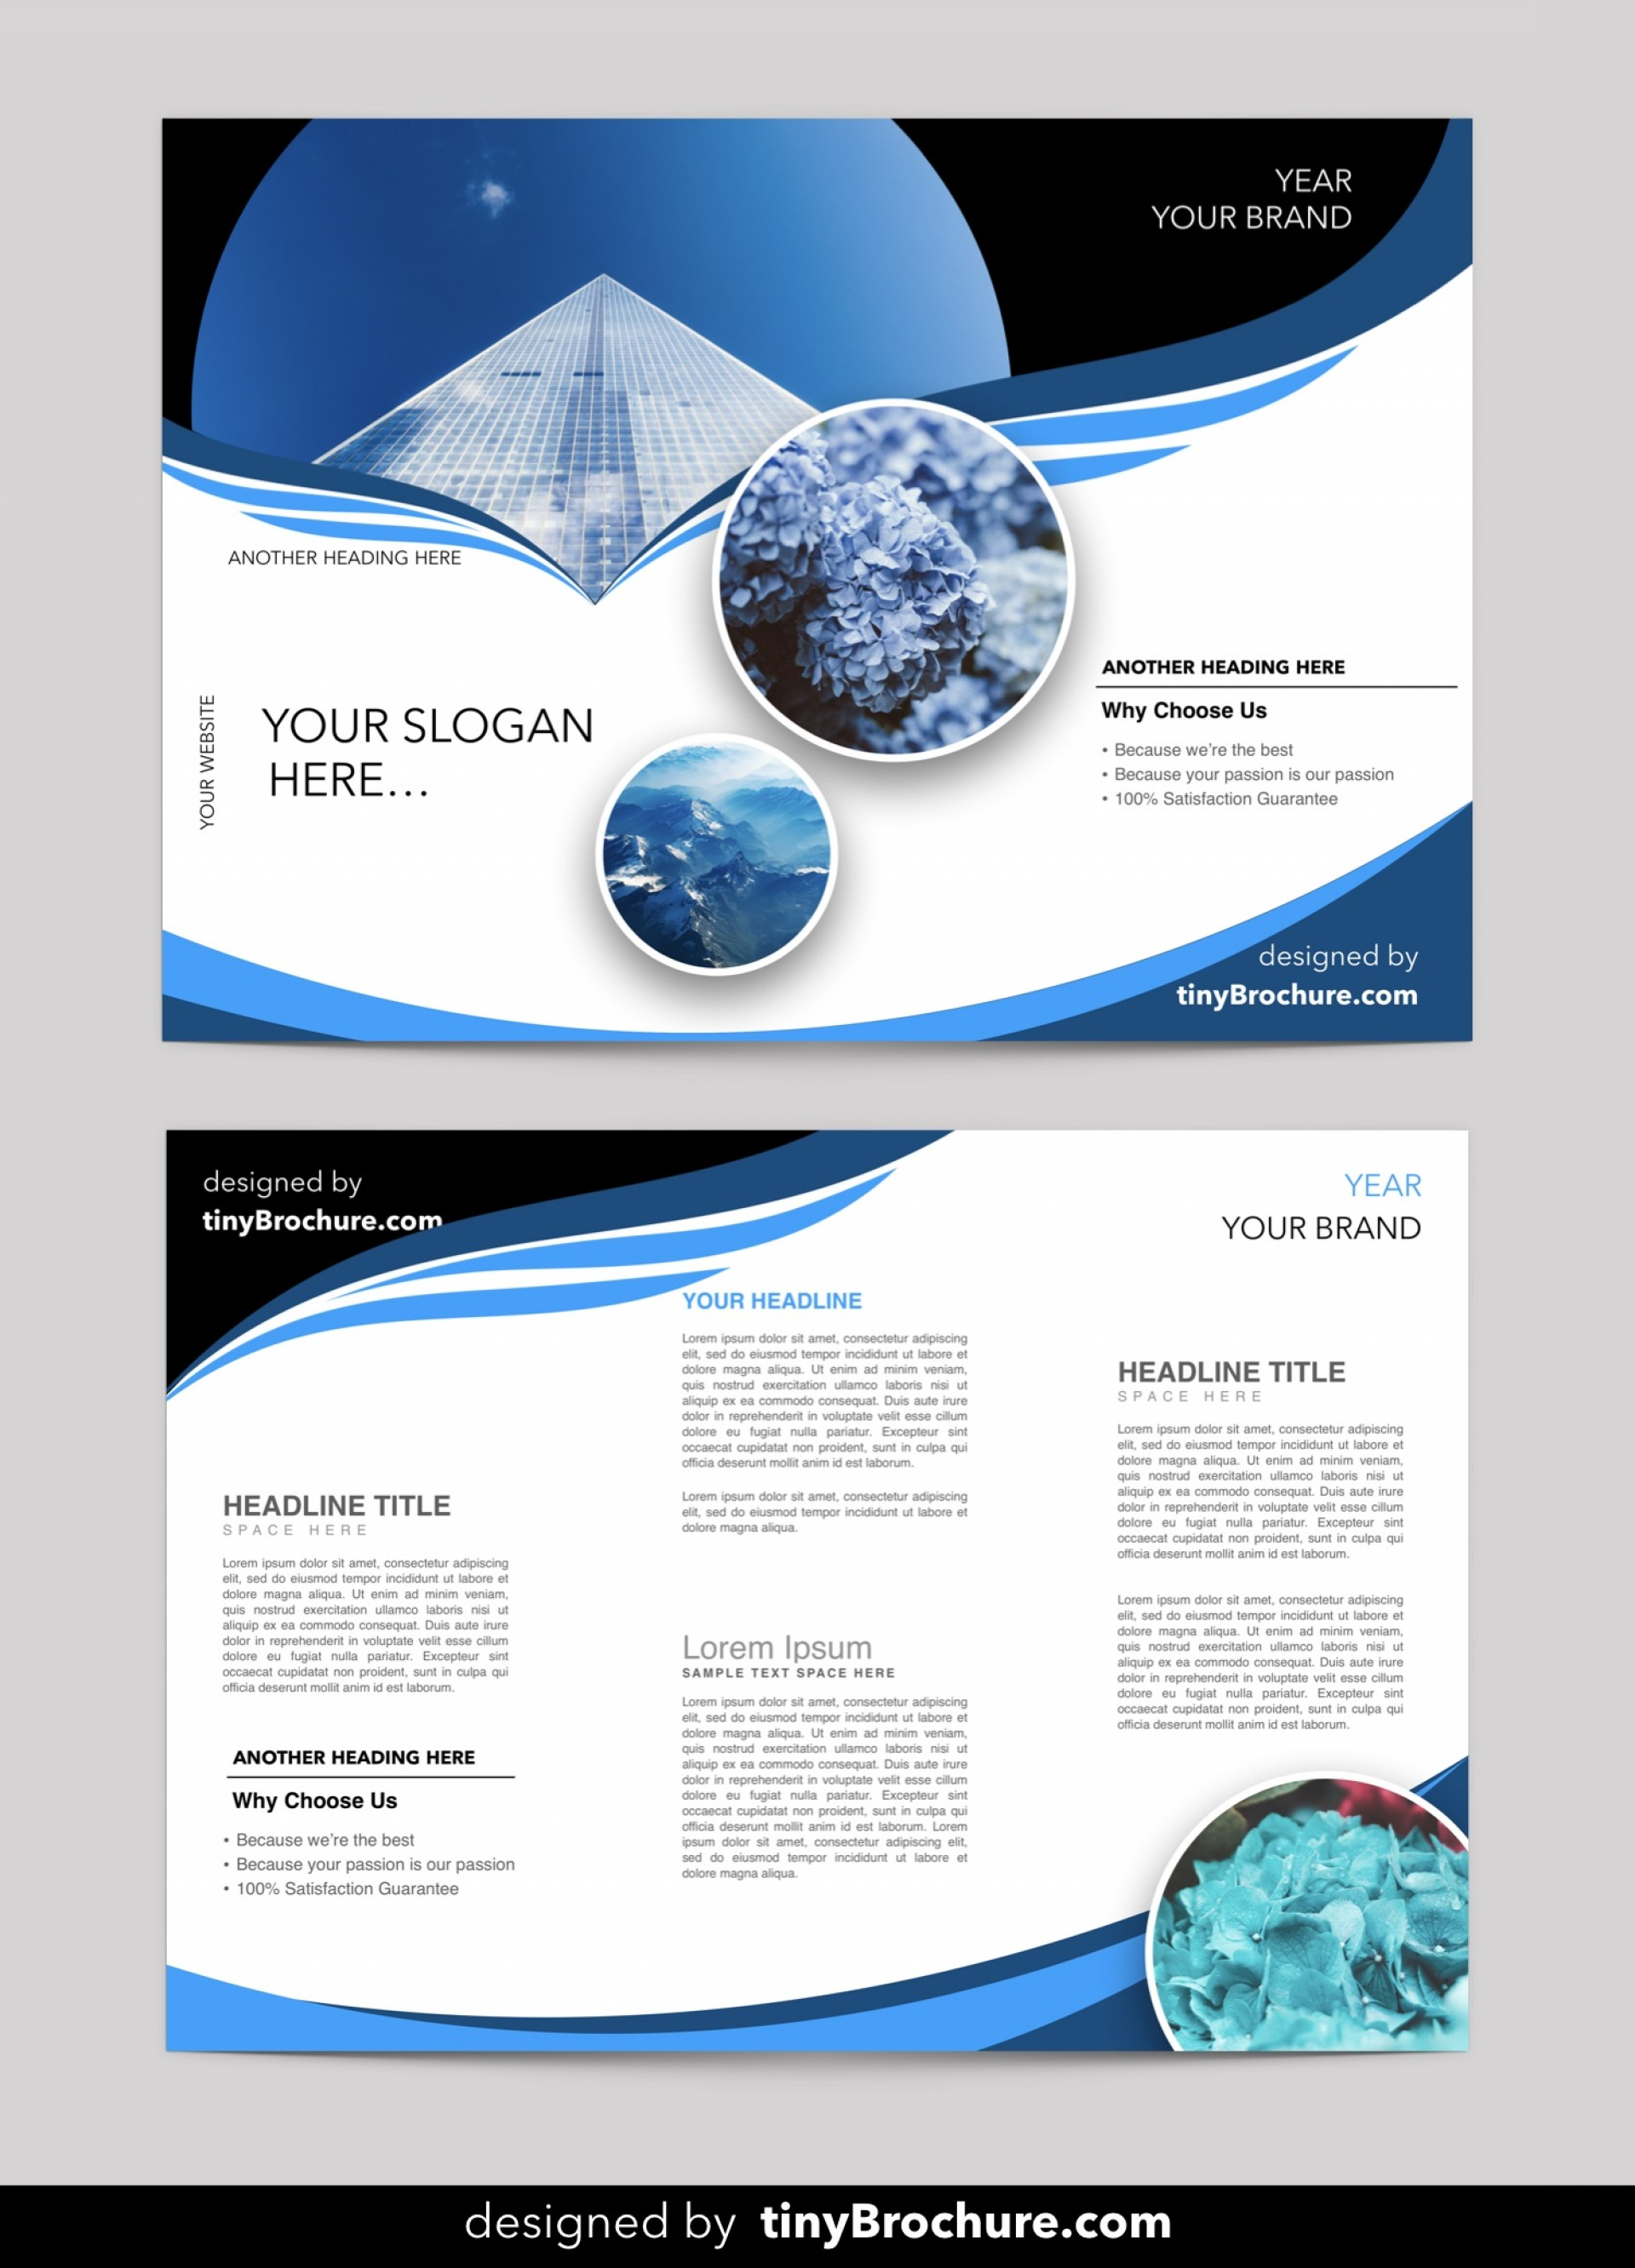 004 Sensational Free Download Flyer Template Photo  Templates Blank Leaflet Word Psd1920